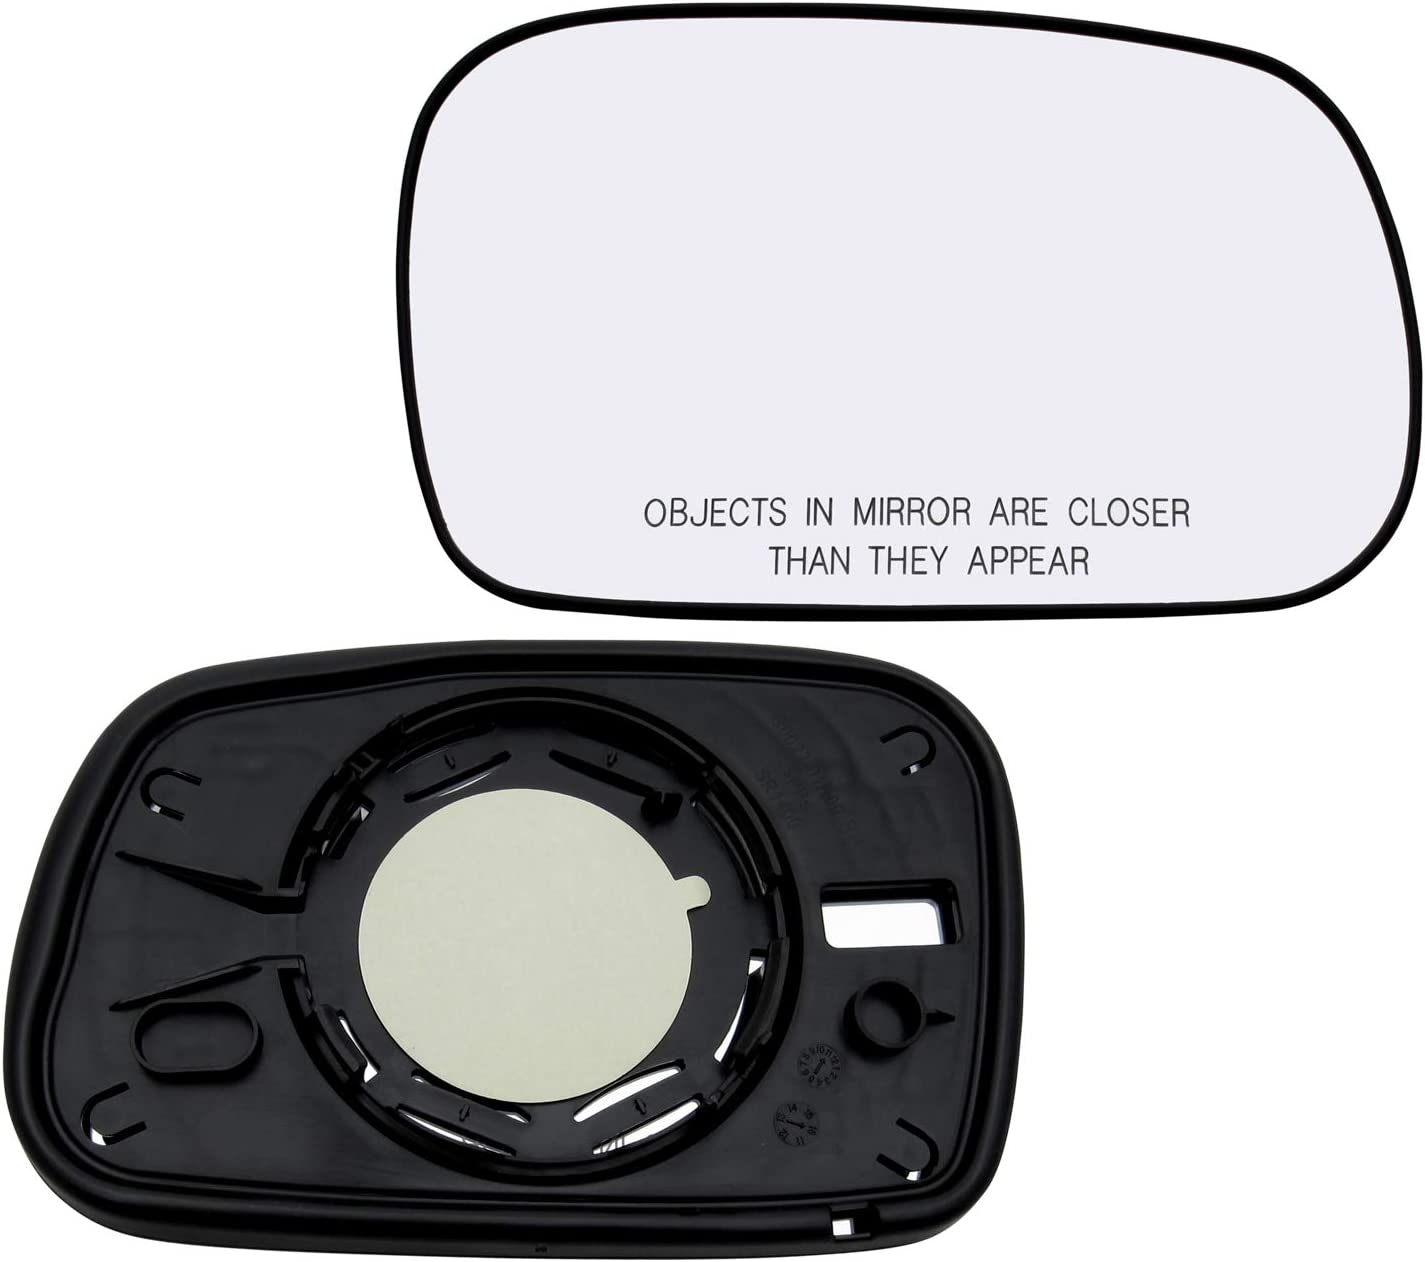 New Replacement Passenger Side Mirror Non-Heated Glass W Backing Compatible With 2006-2011 Honda Civic Coupe 2-Door Only Sold By Rugged TUFF